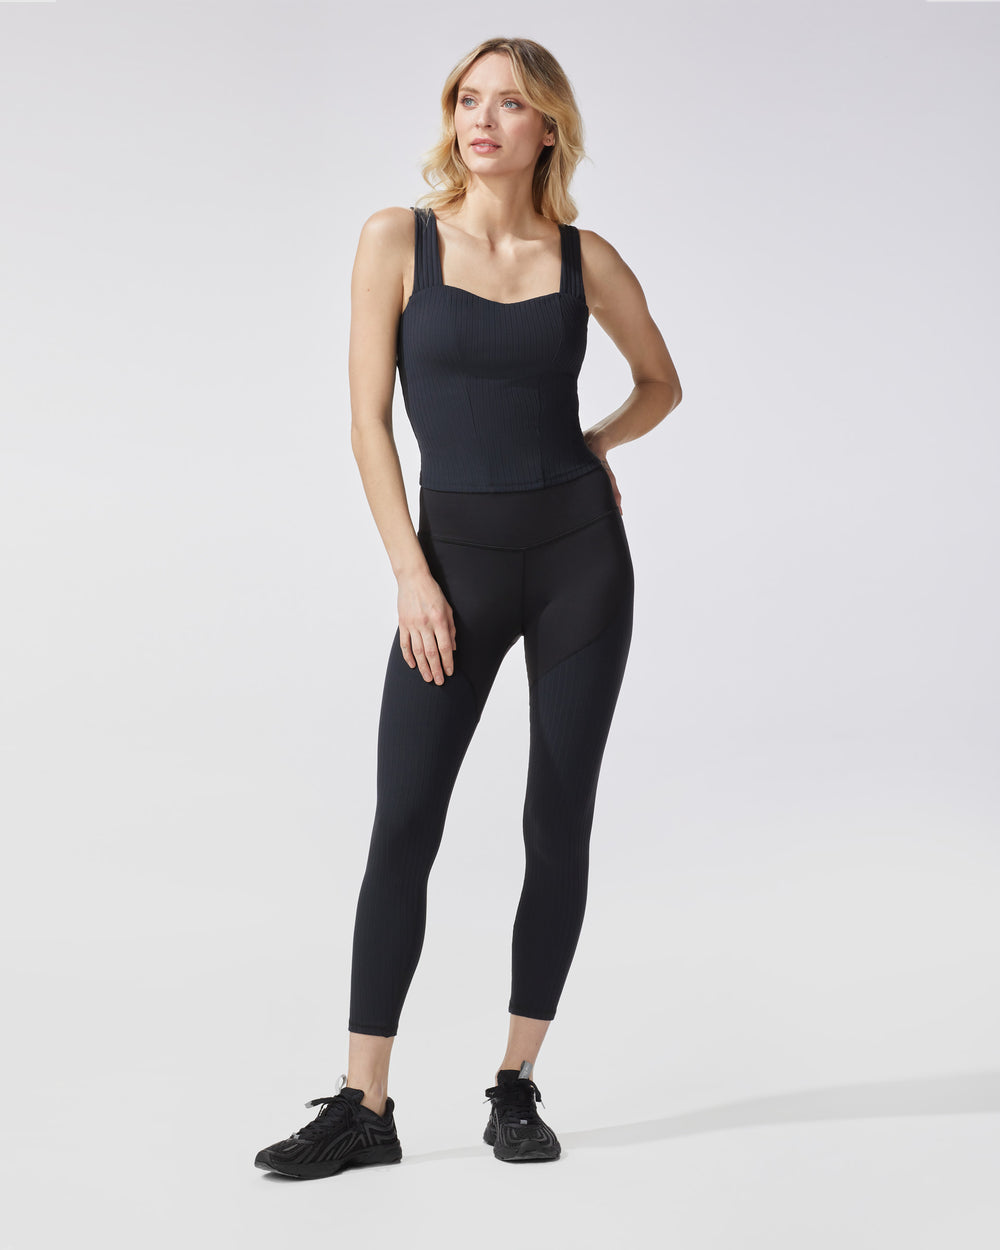 Rocket Ribbed Legging - Black